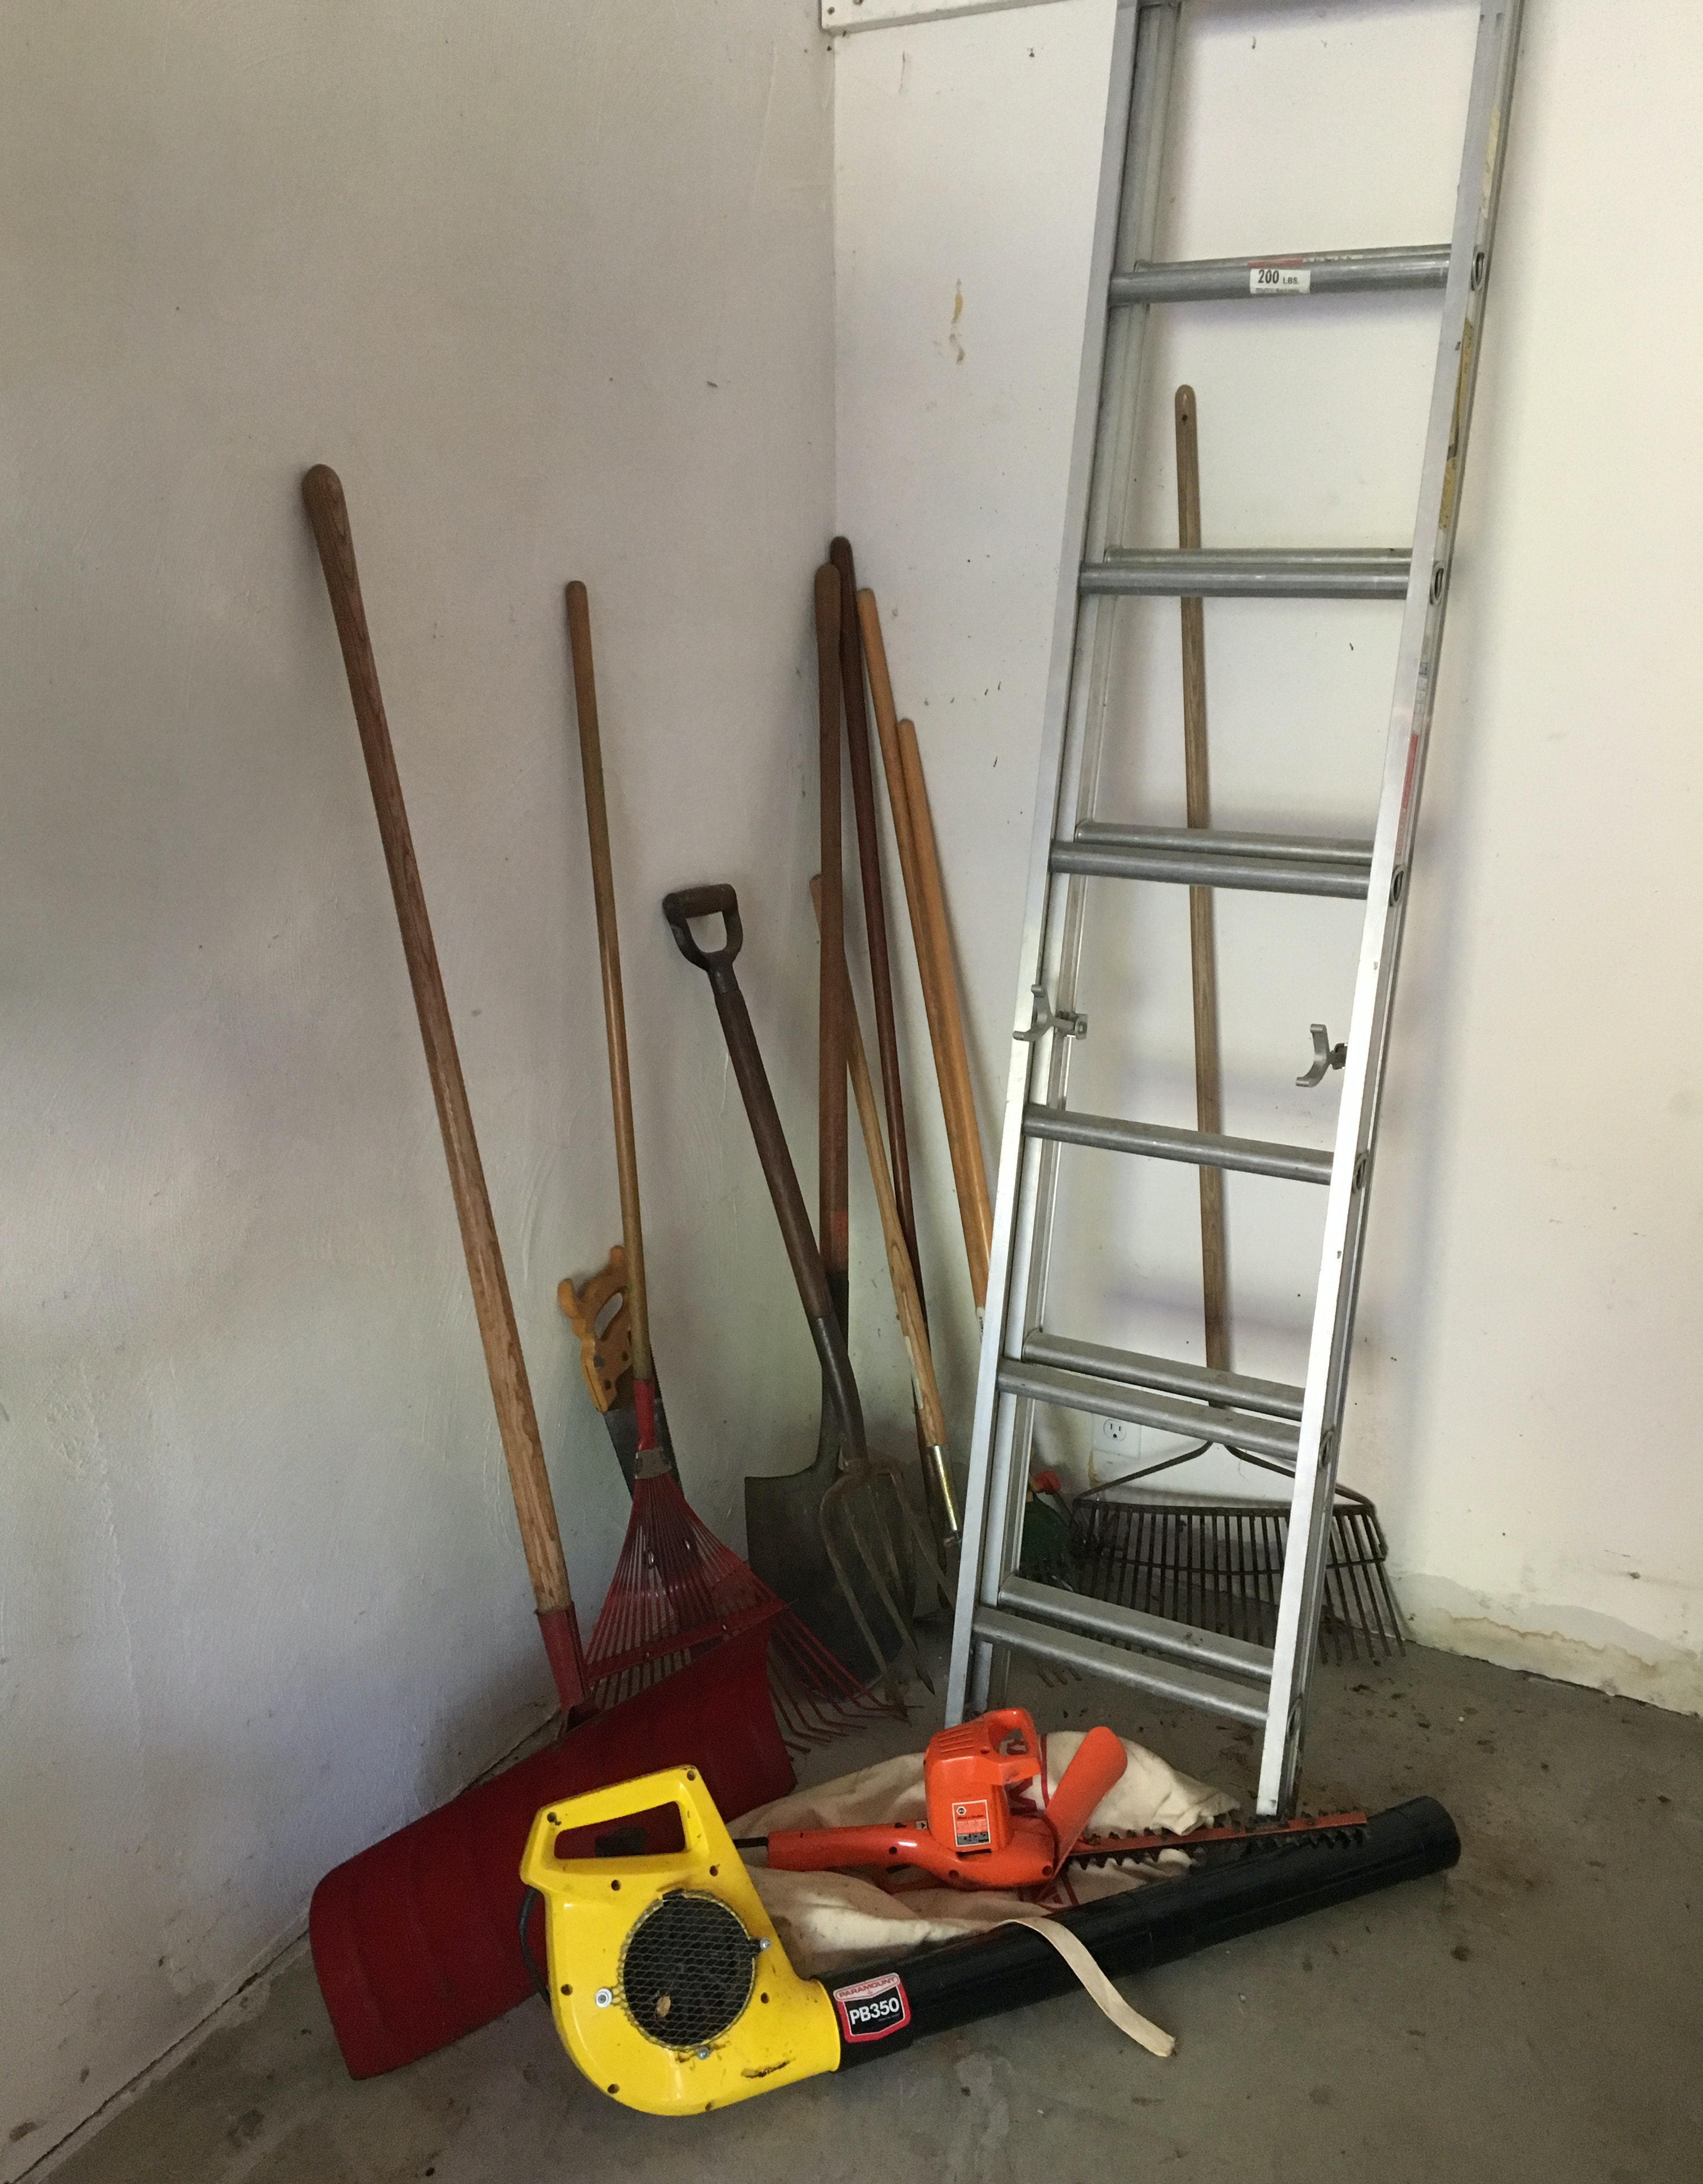 Assorted Landscaping Tools and Extension Ladder